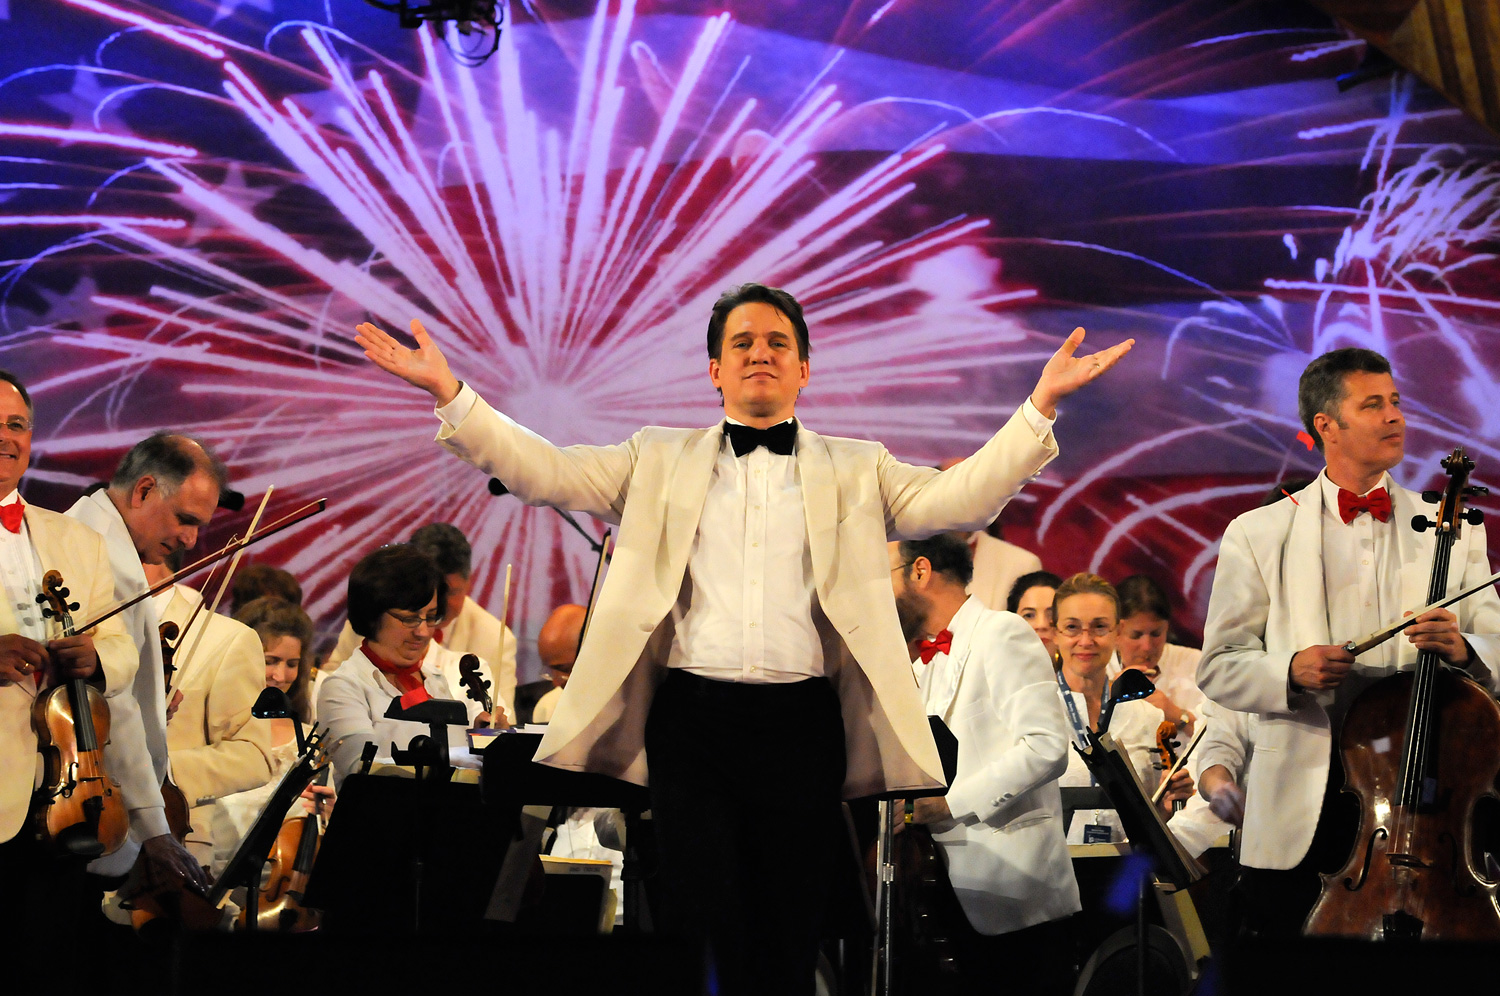 Things to Do in Boston - Pops 2016 Summer Concert Season